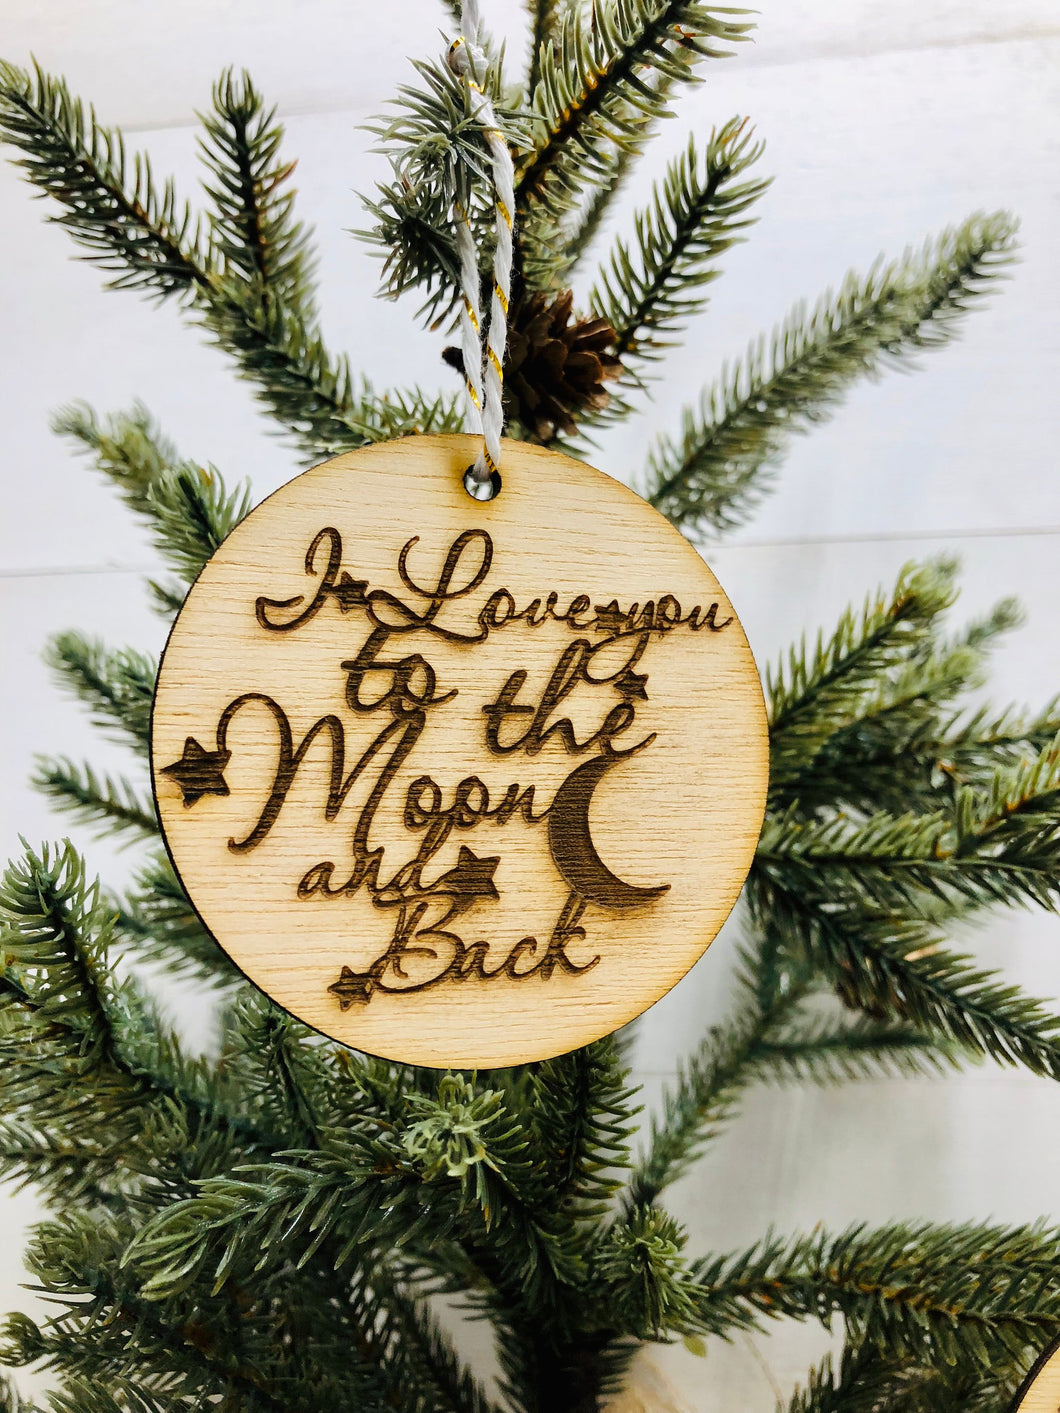 I Love You To The Moon And Back Wooden Ornament, Christmas Ornaments,  Love You Accents, Small Gifts Easy to Mail, Small Wooden Accent Decor